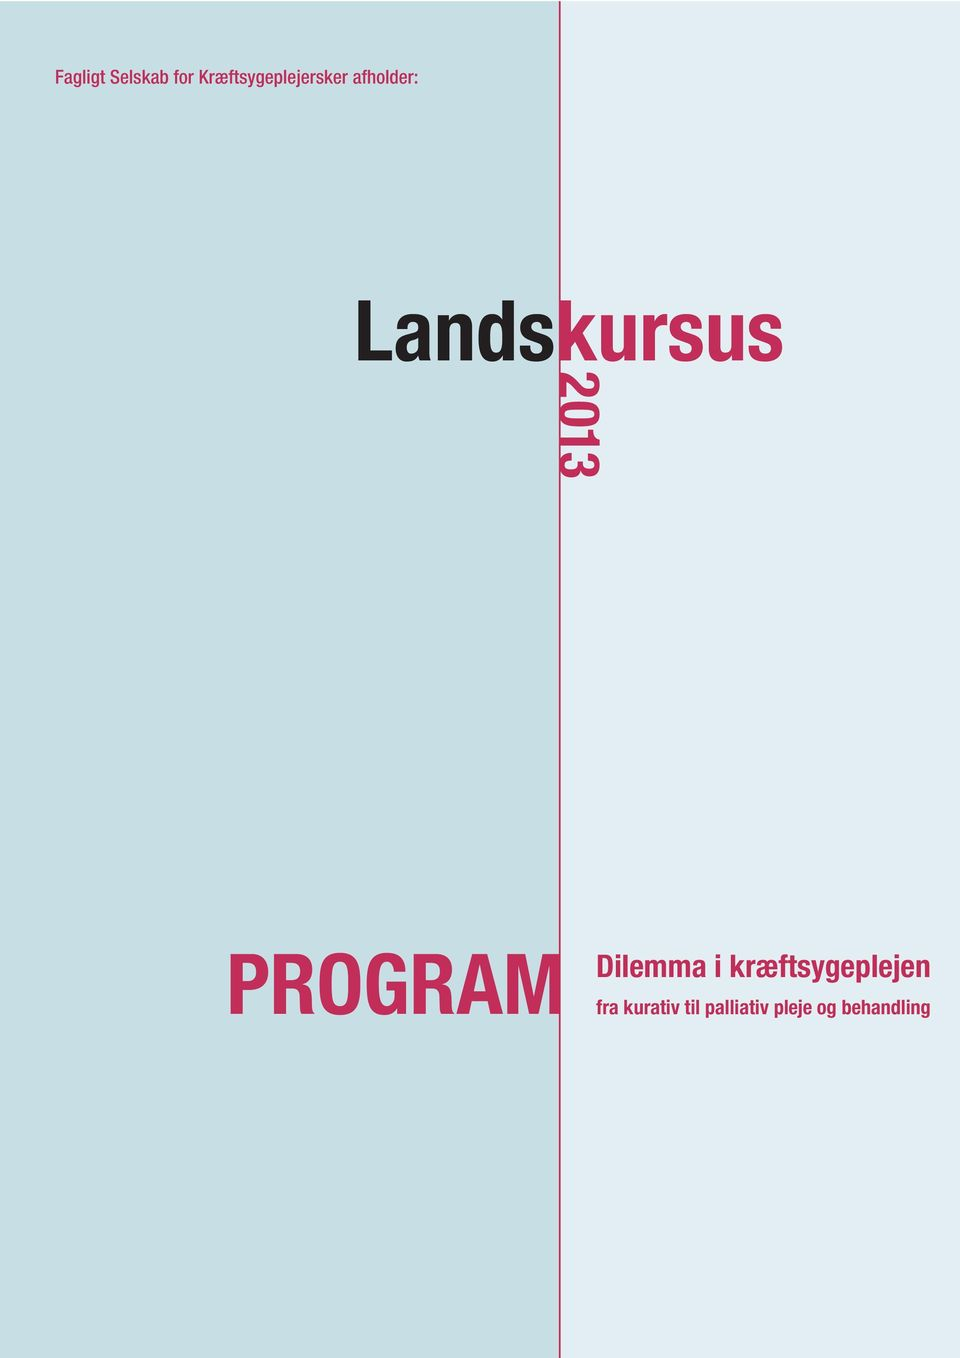 Landskursus 2013 PROGRAM Dilemma i